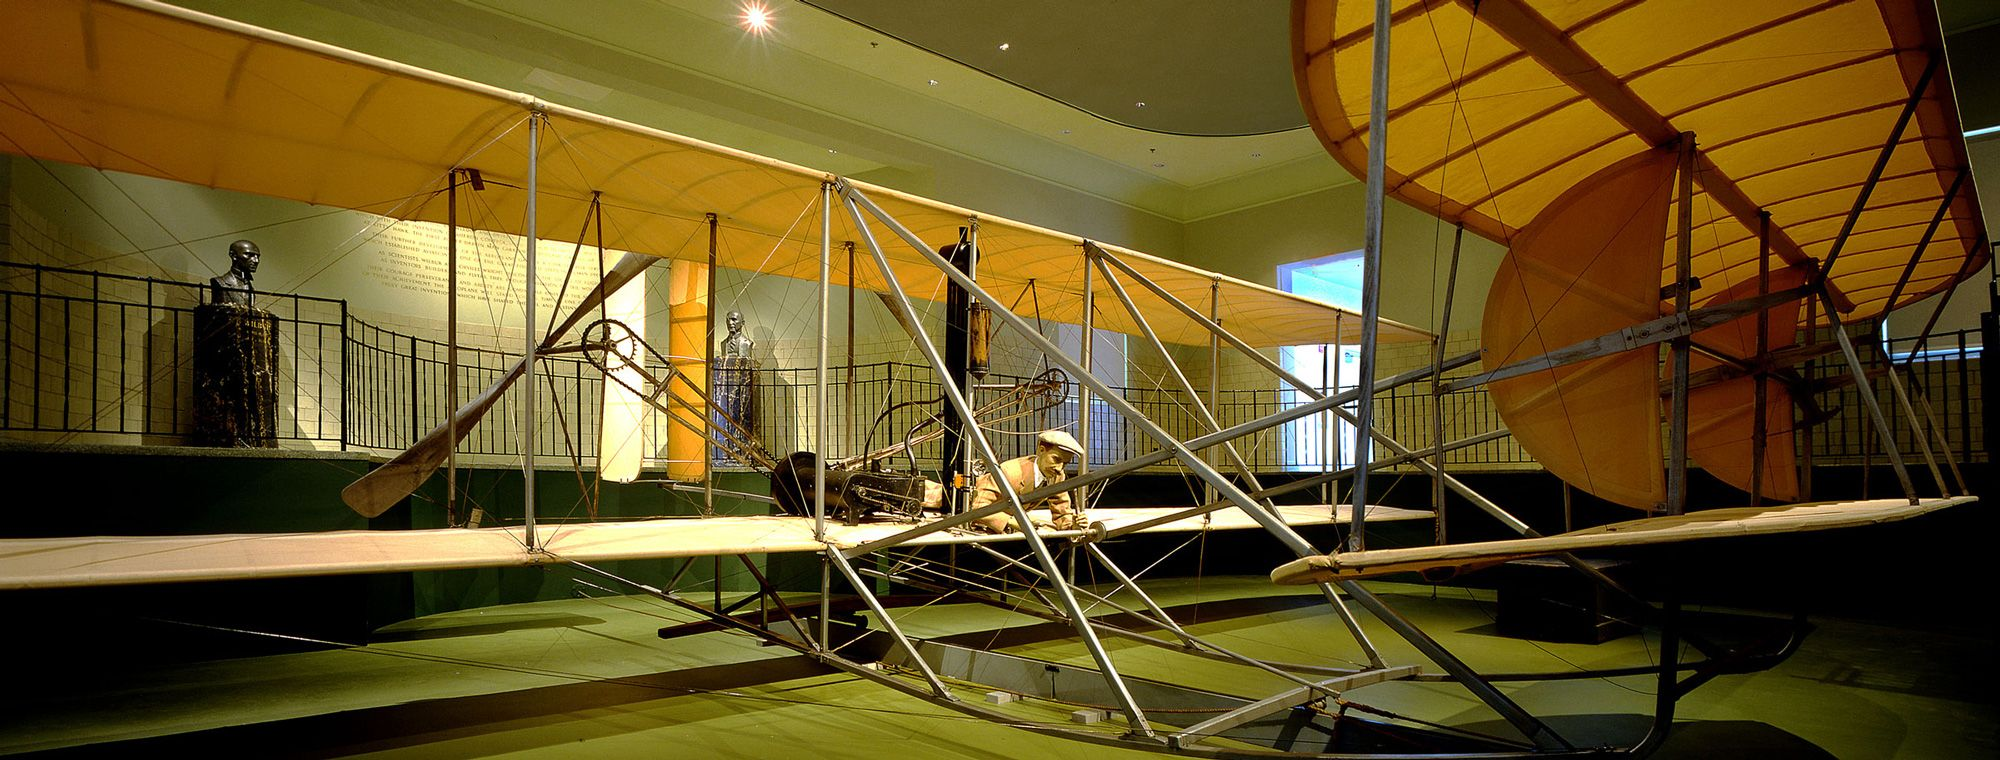 36 Hours in Dayton Aviation center, Wright brothers